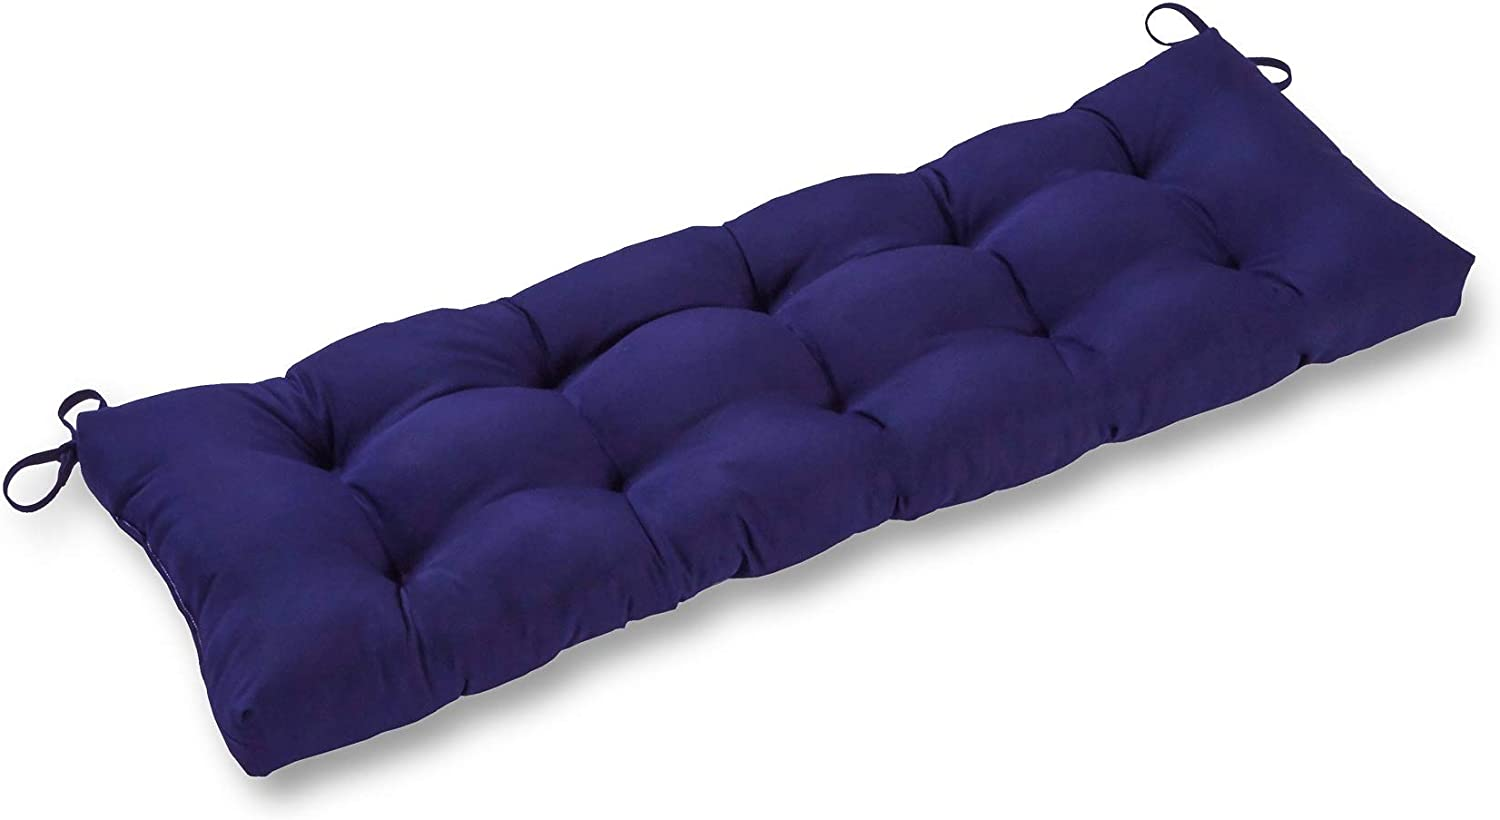 South Pine Porch AM5812-NAVY Solid Navy 51-inch Outdoor Bench Cushion, 51x18